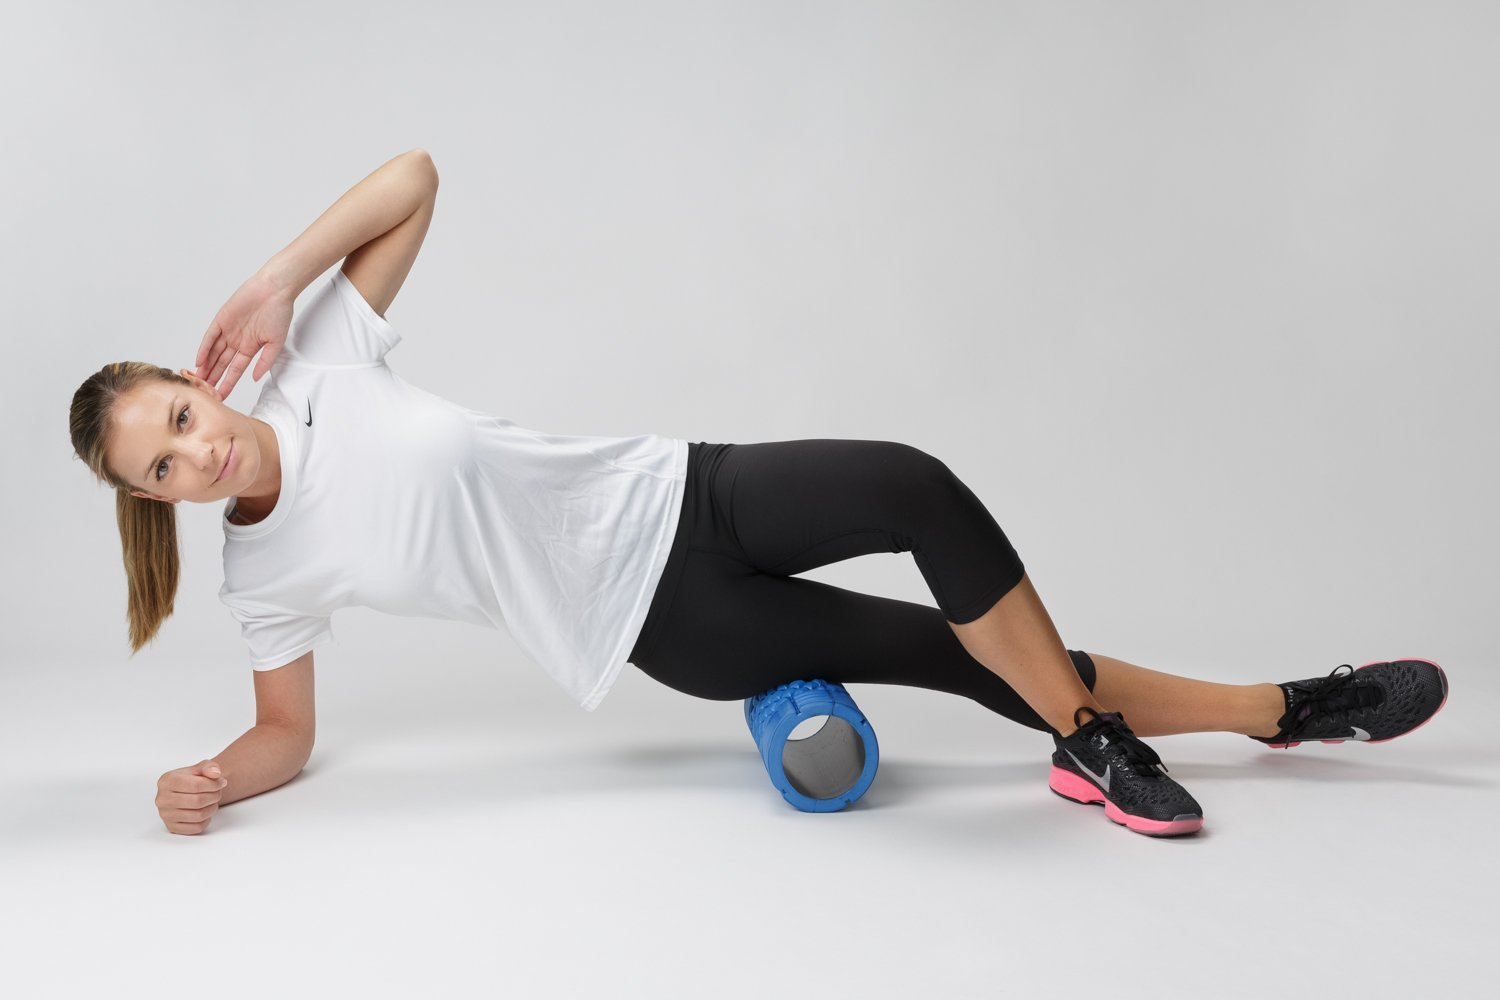 BodyForm Foam Roller with Deep Tissue Massage